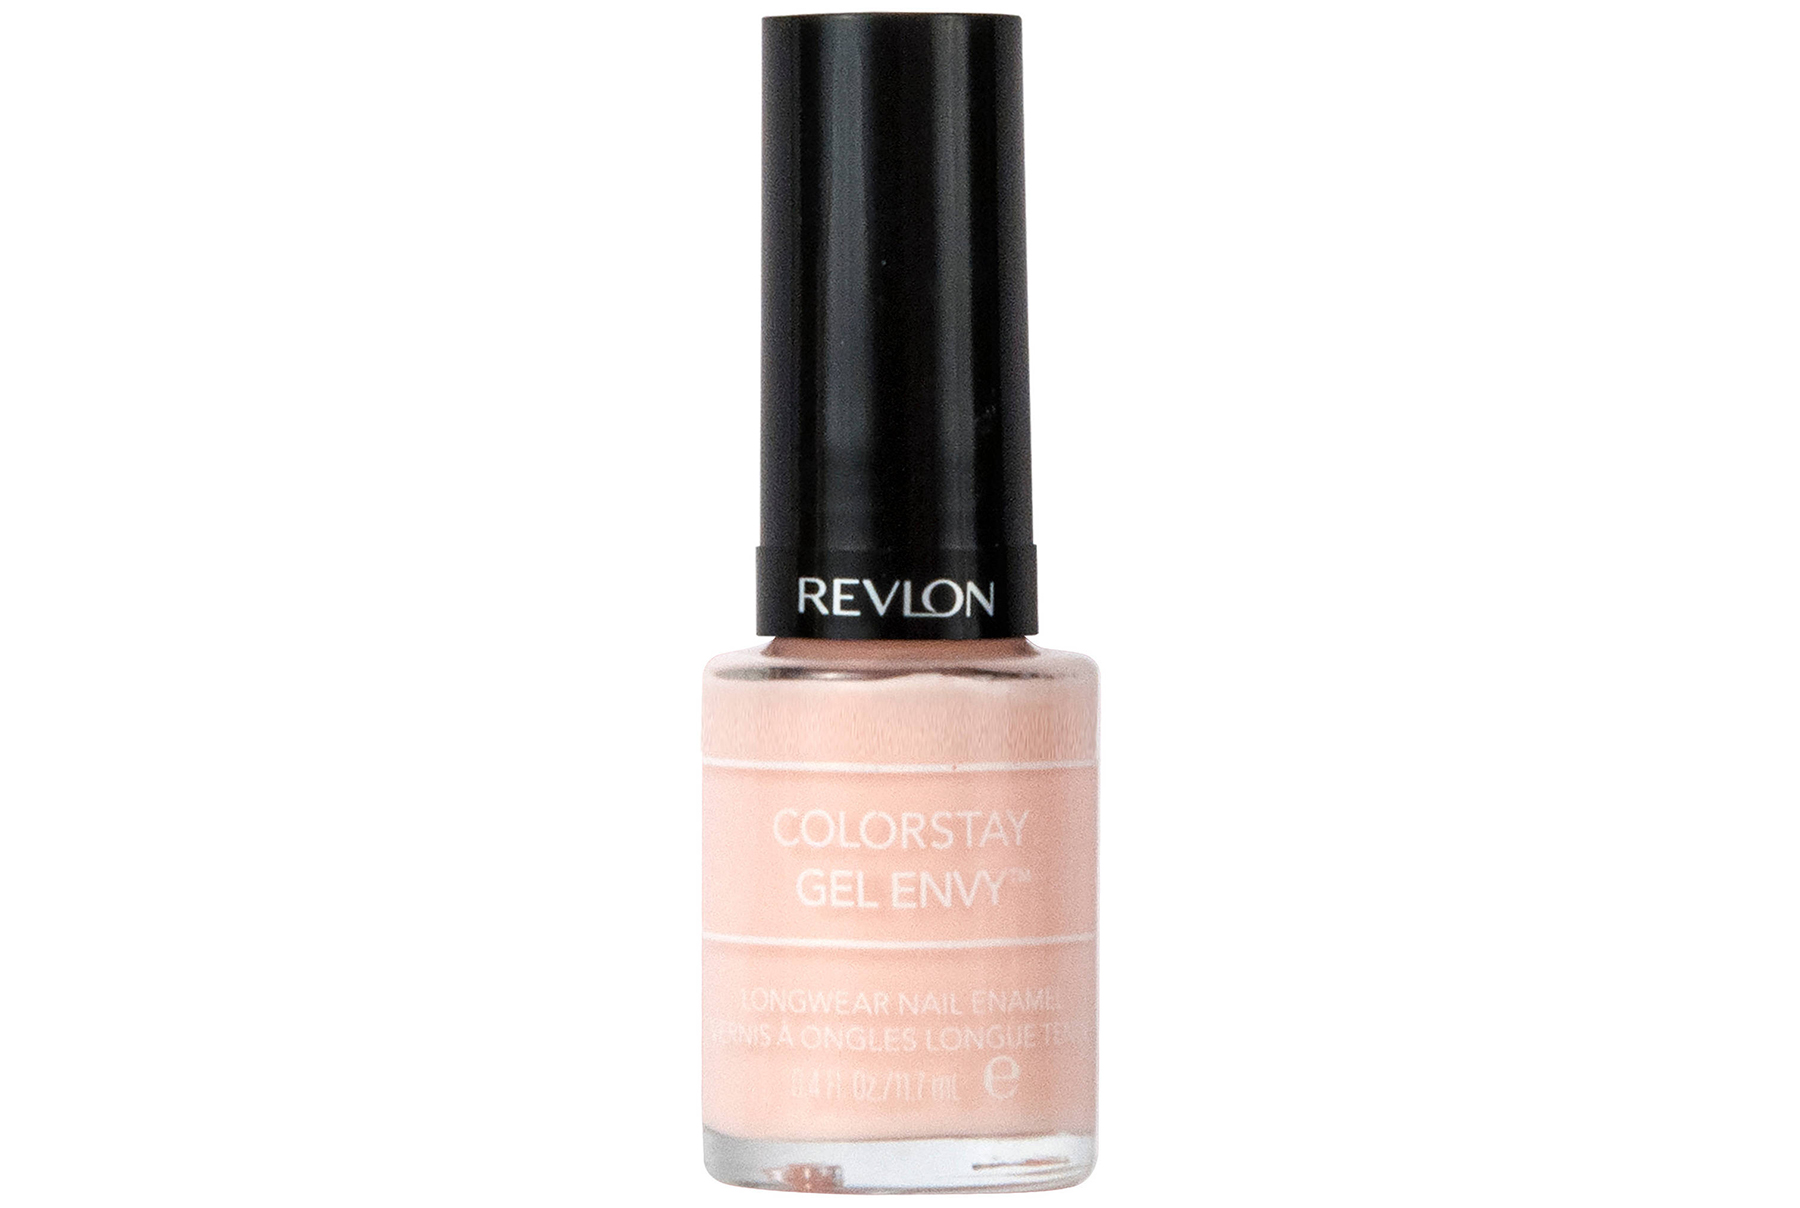 The Best Nude Nail Polish for Every Skin Tone | Real Simple